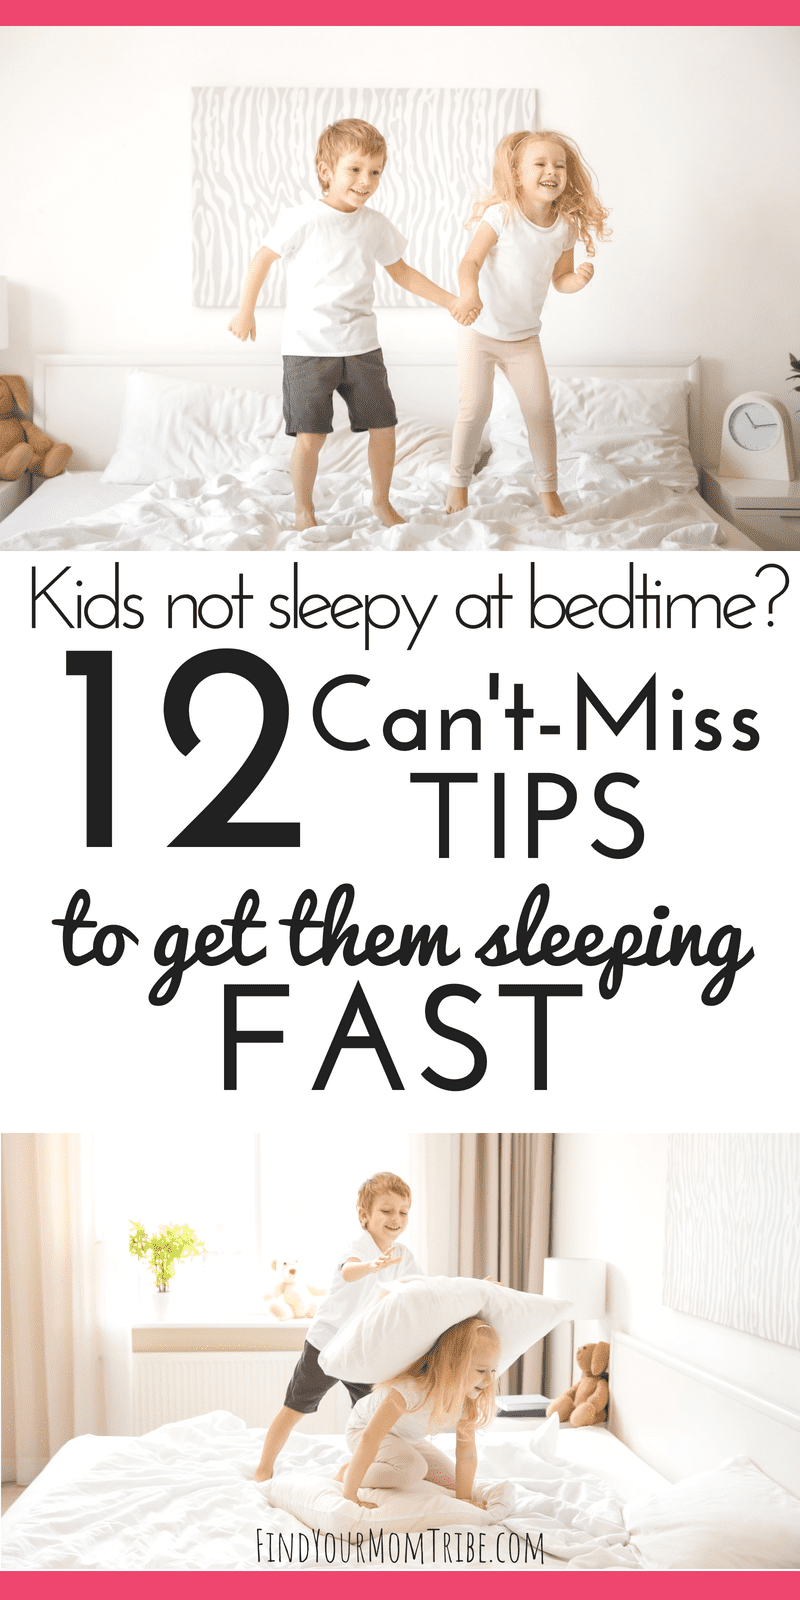 kids not sleepy at bedtime